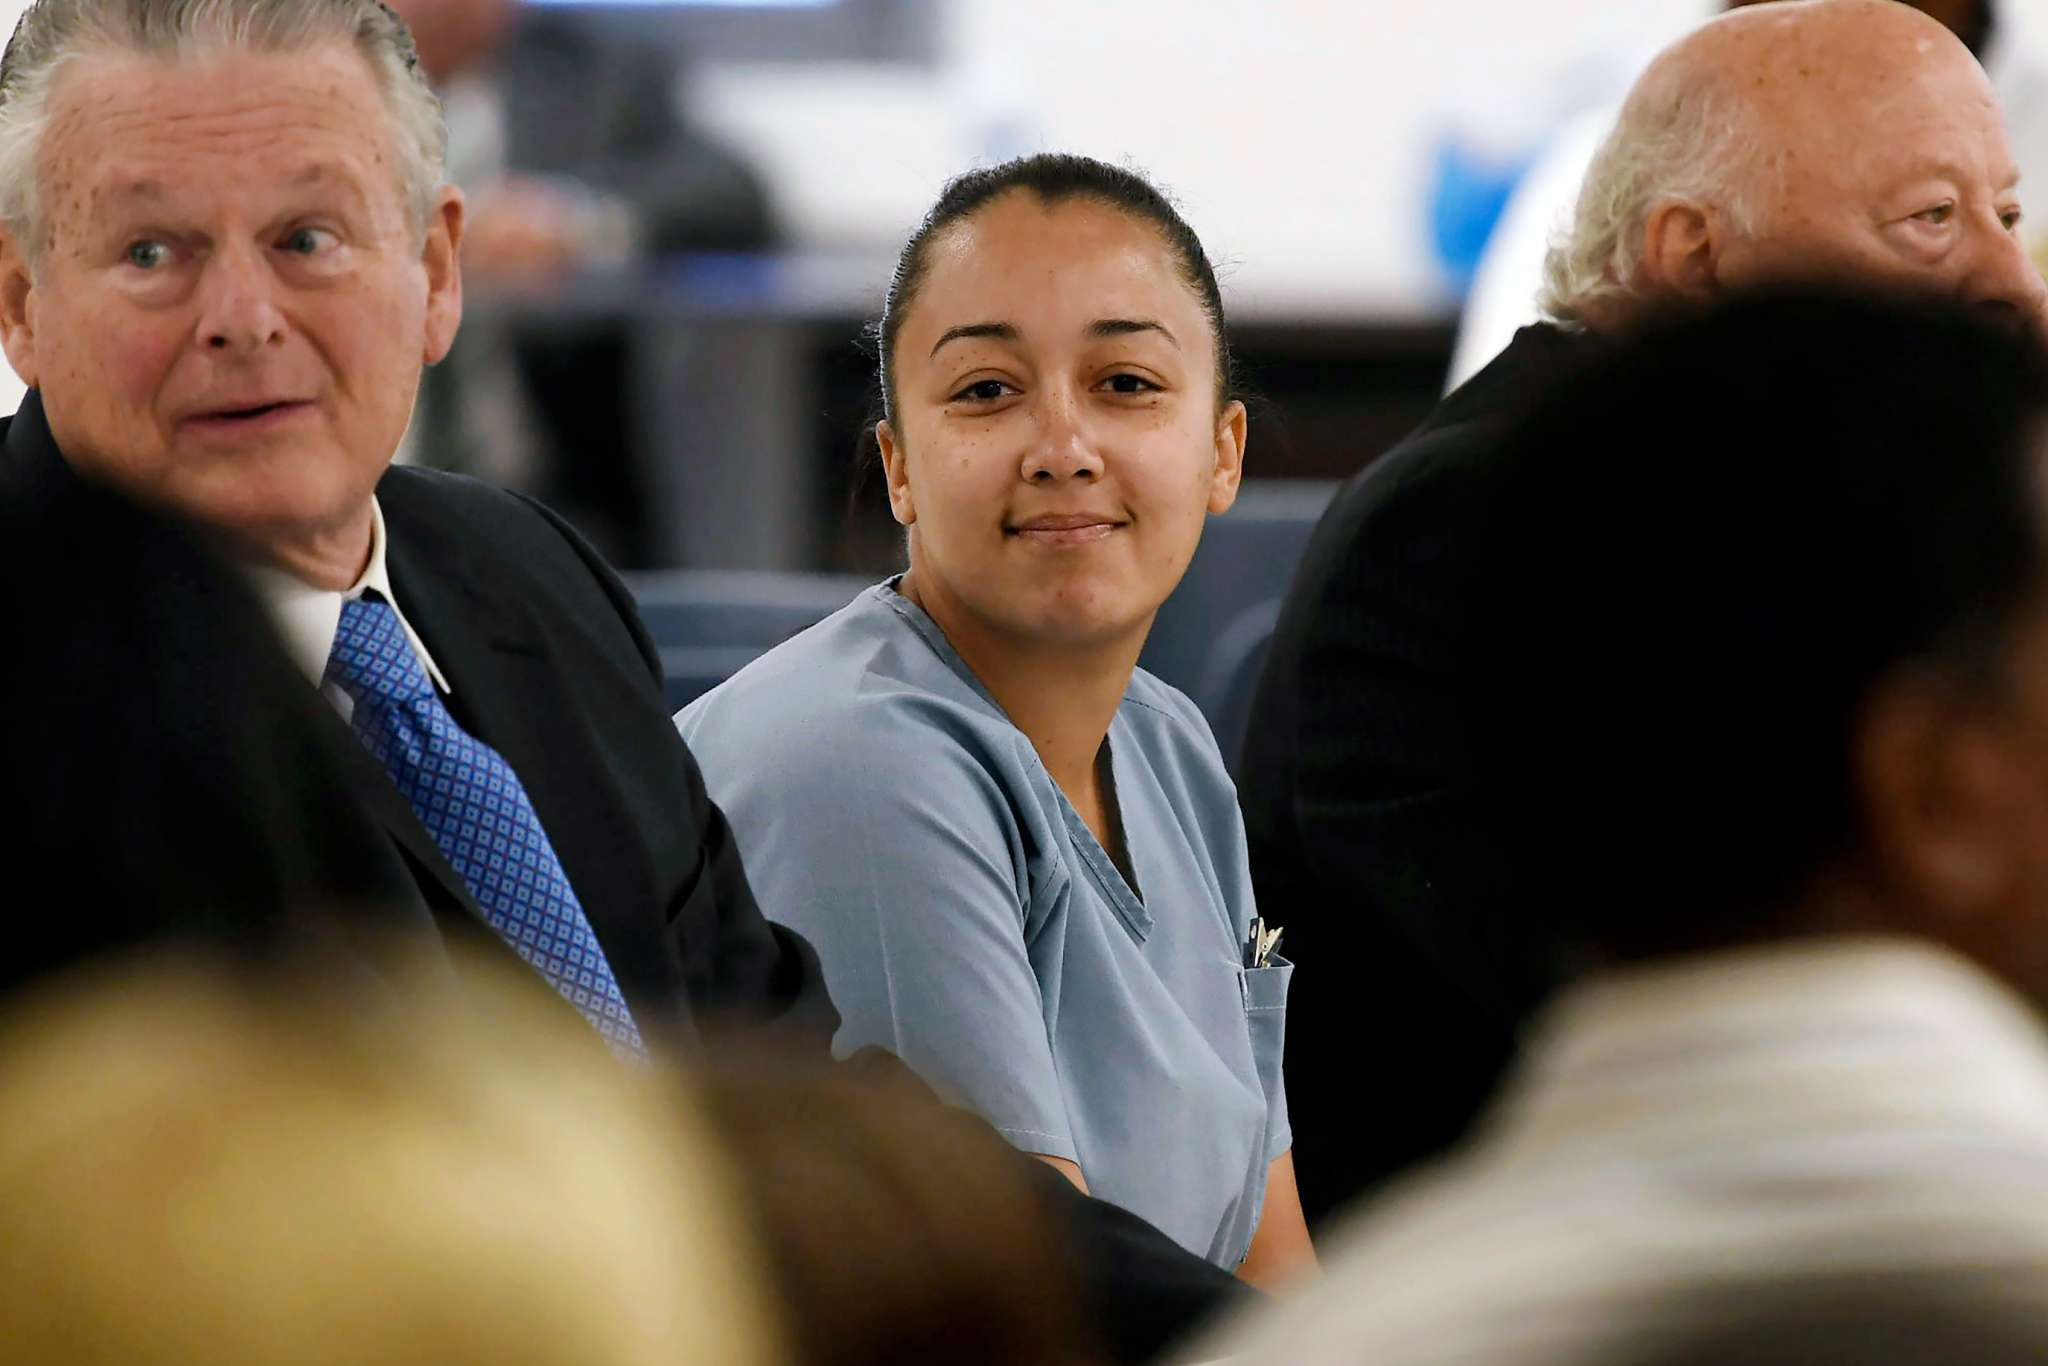 T.I. Celebrates: Sex Trafficking Victim Cyntoia Brown Is Granted Clemency After Serving 15 Years In Prison